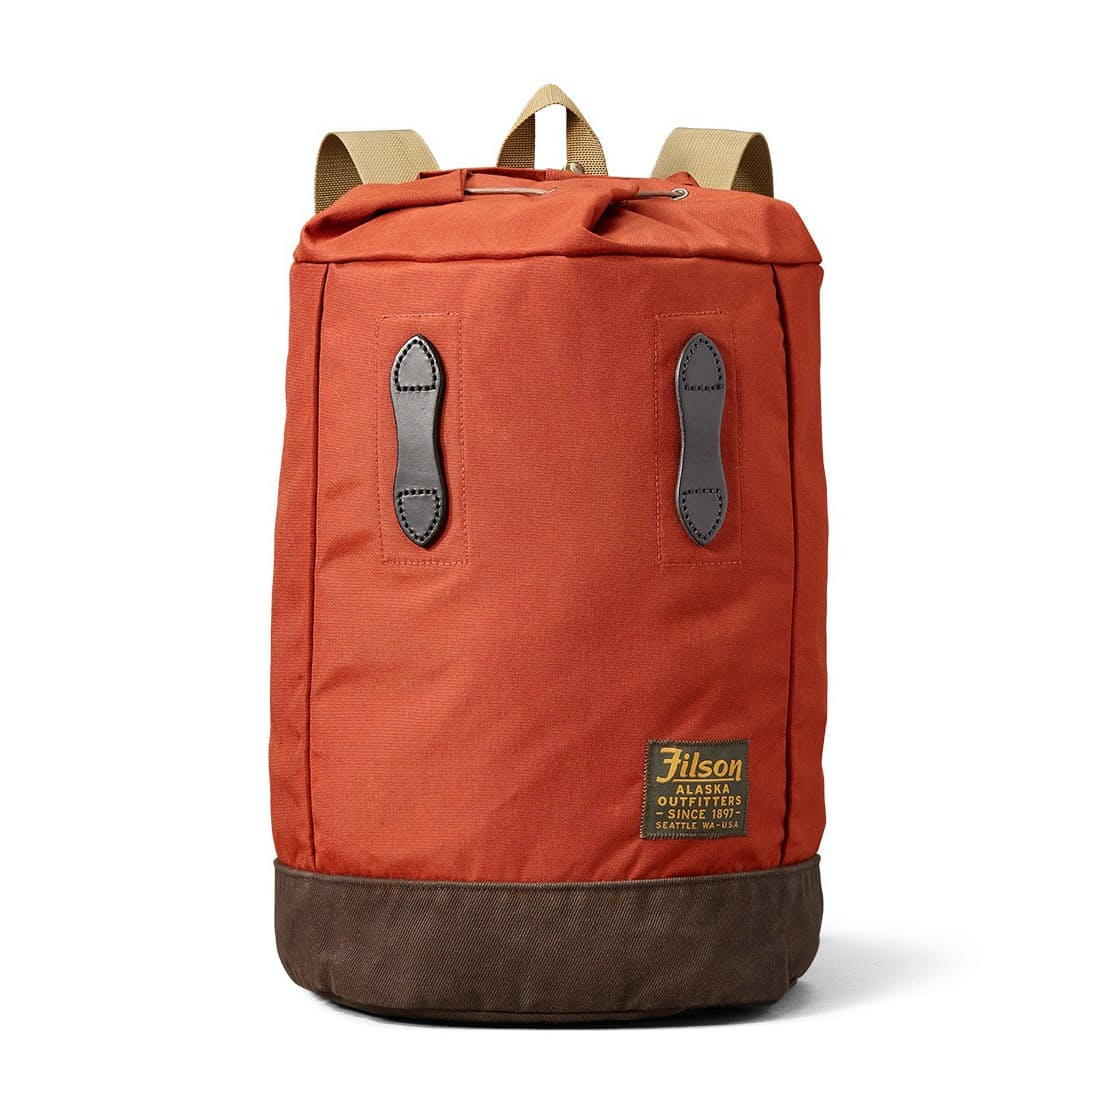 Lj9mmi9fqb filson day pack accessories 0 original